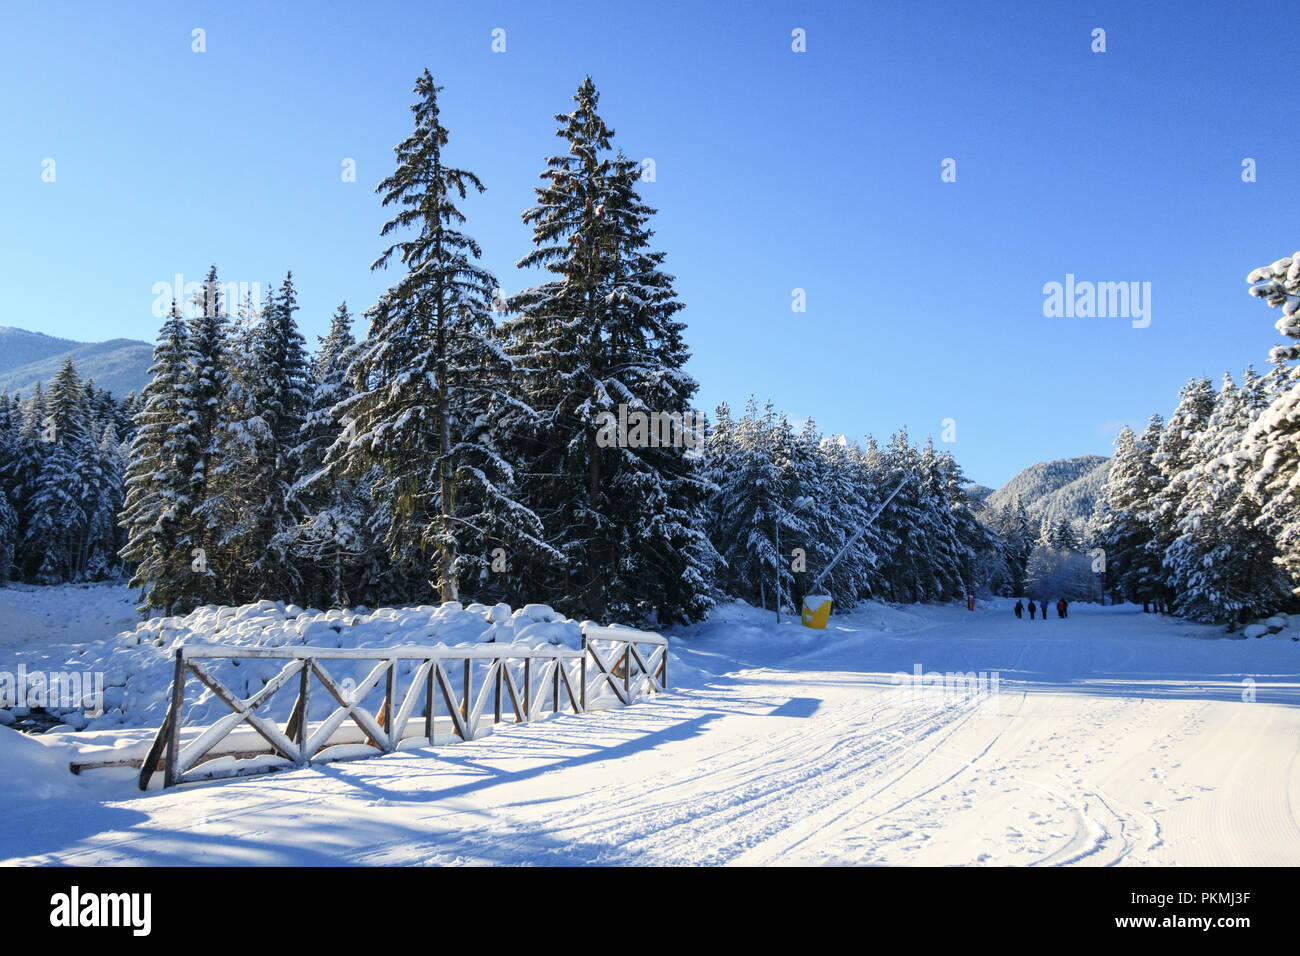 Bansko resort panoramic view with ski slope in the forest and snow trees, Bulgaria - Stock Image